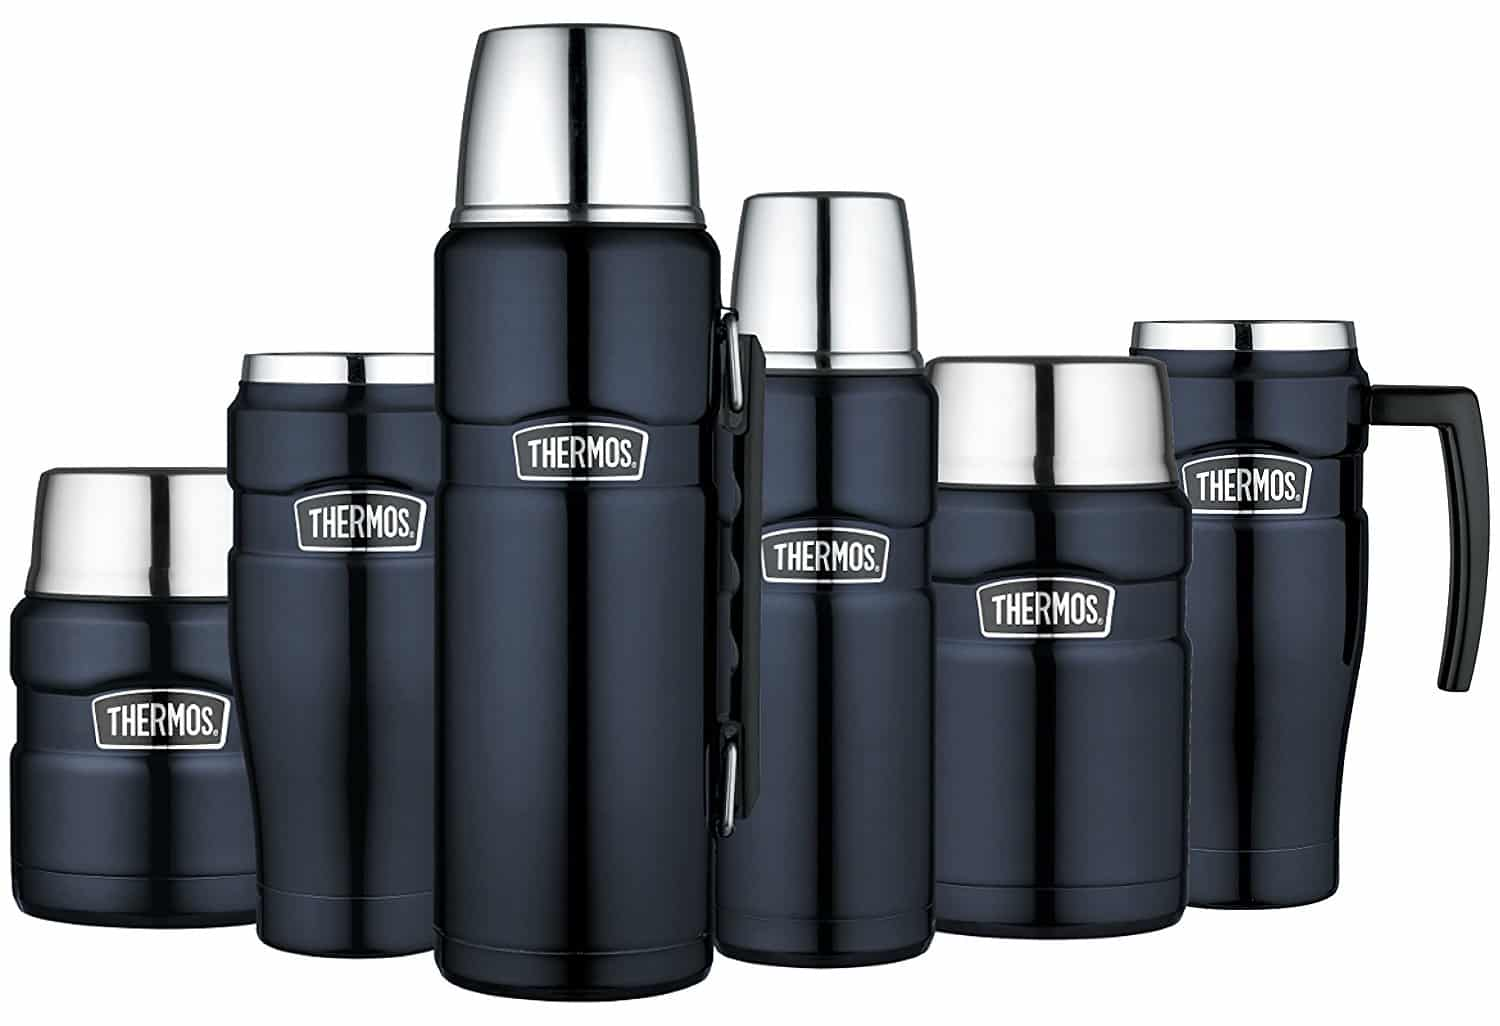 Thermos Flask Buying Guide